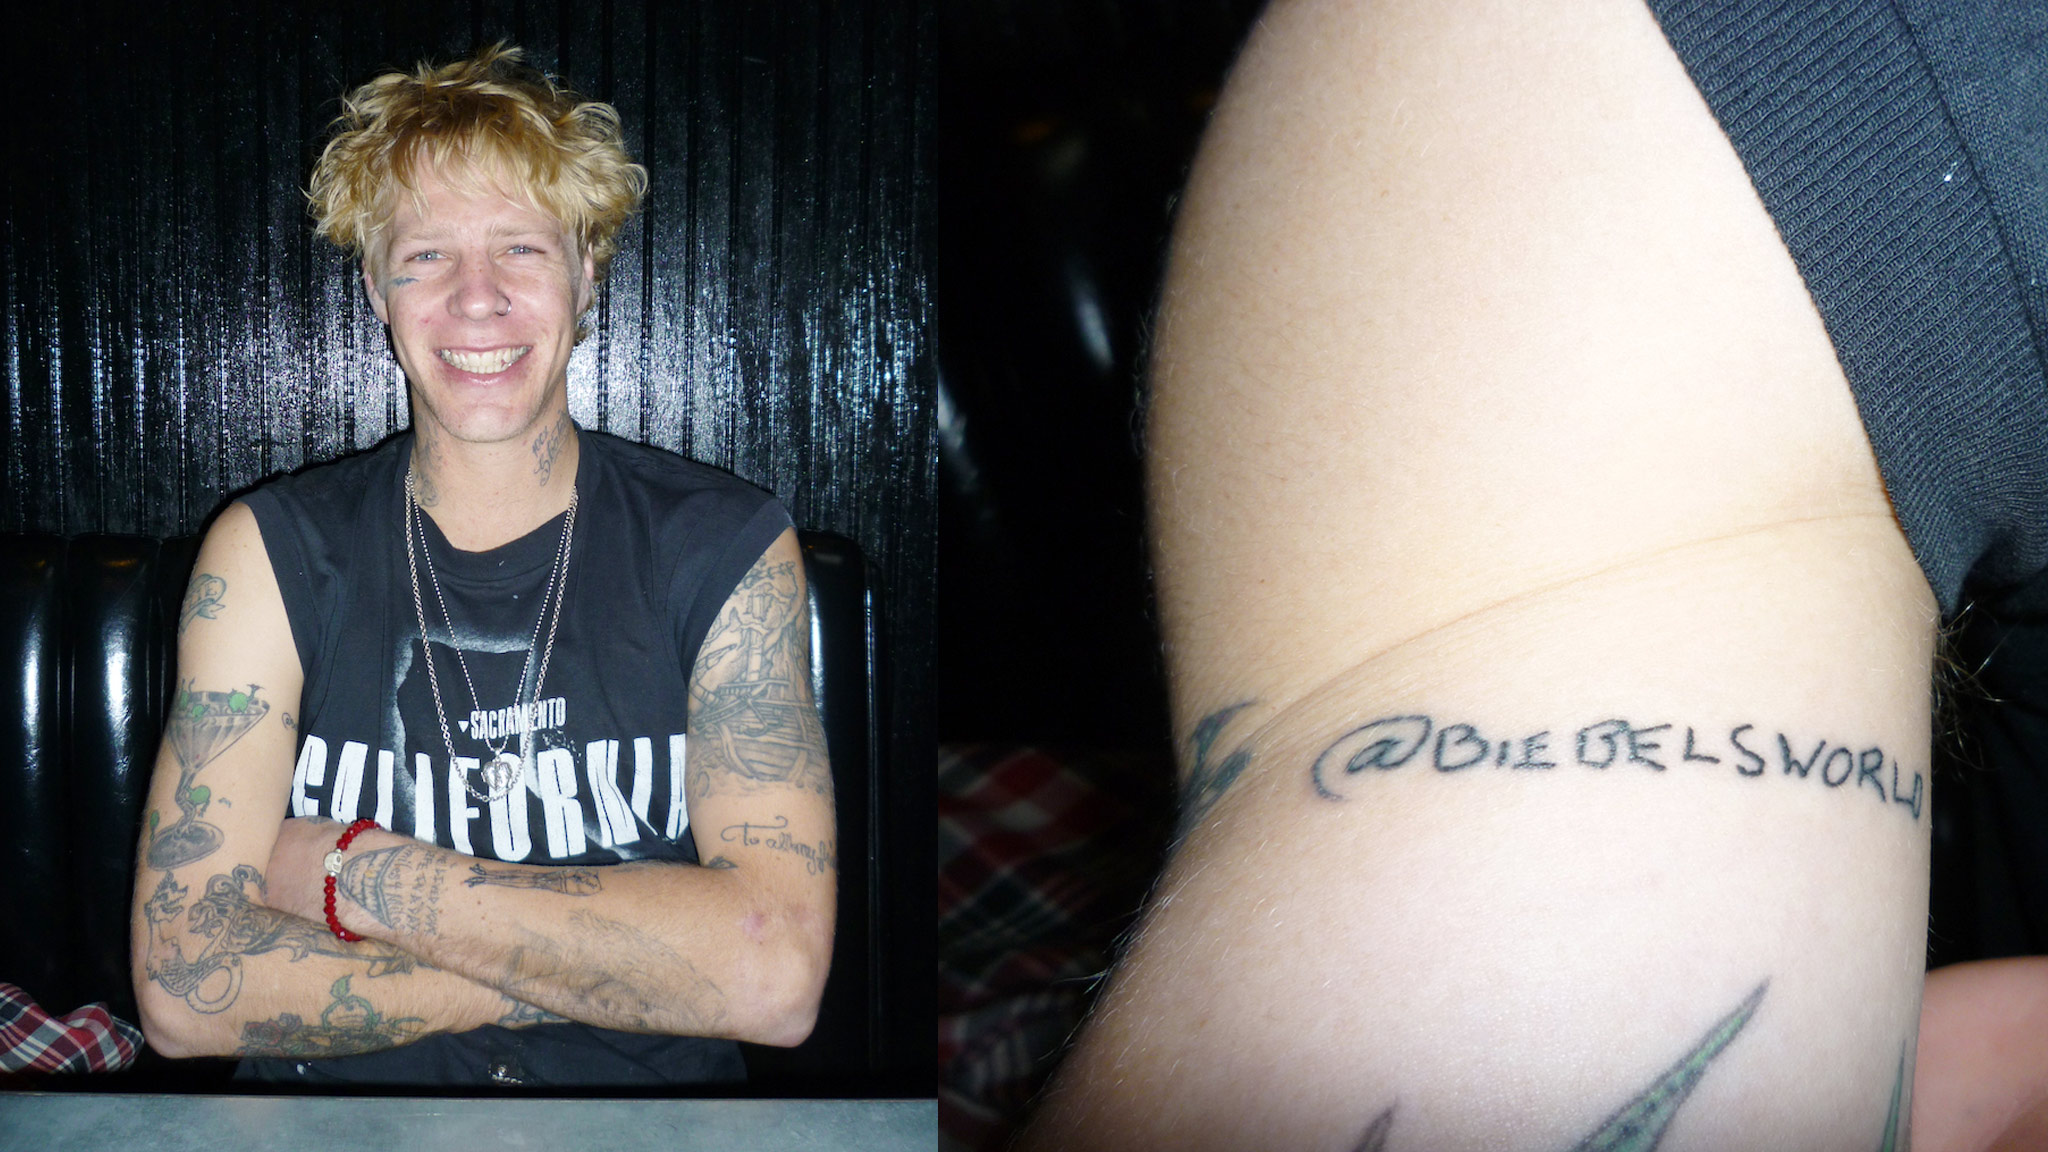 Baker Skateboards pro Braydon Szafranski tells tales of his tattoo adventures.